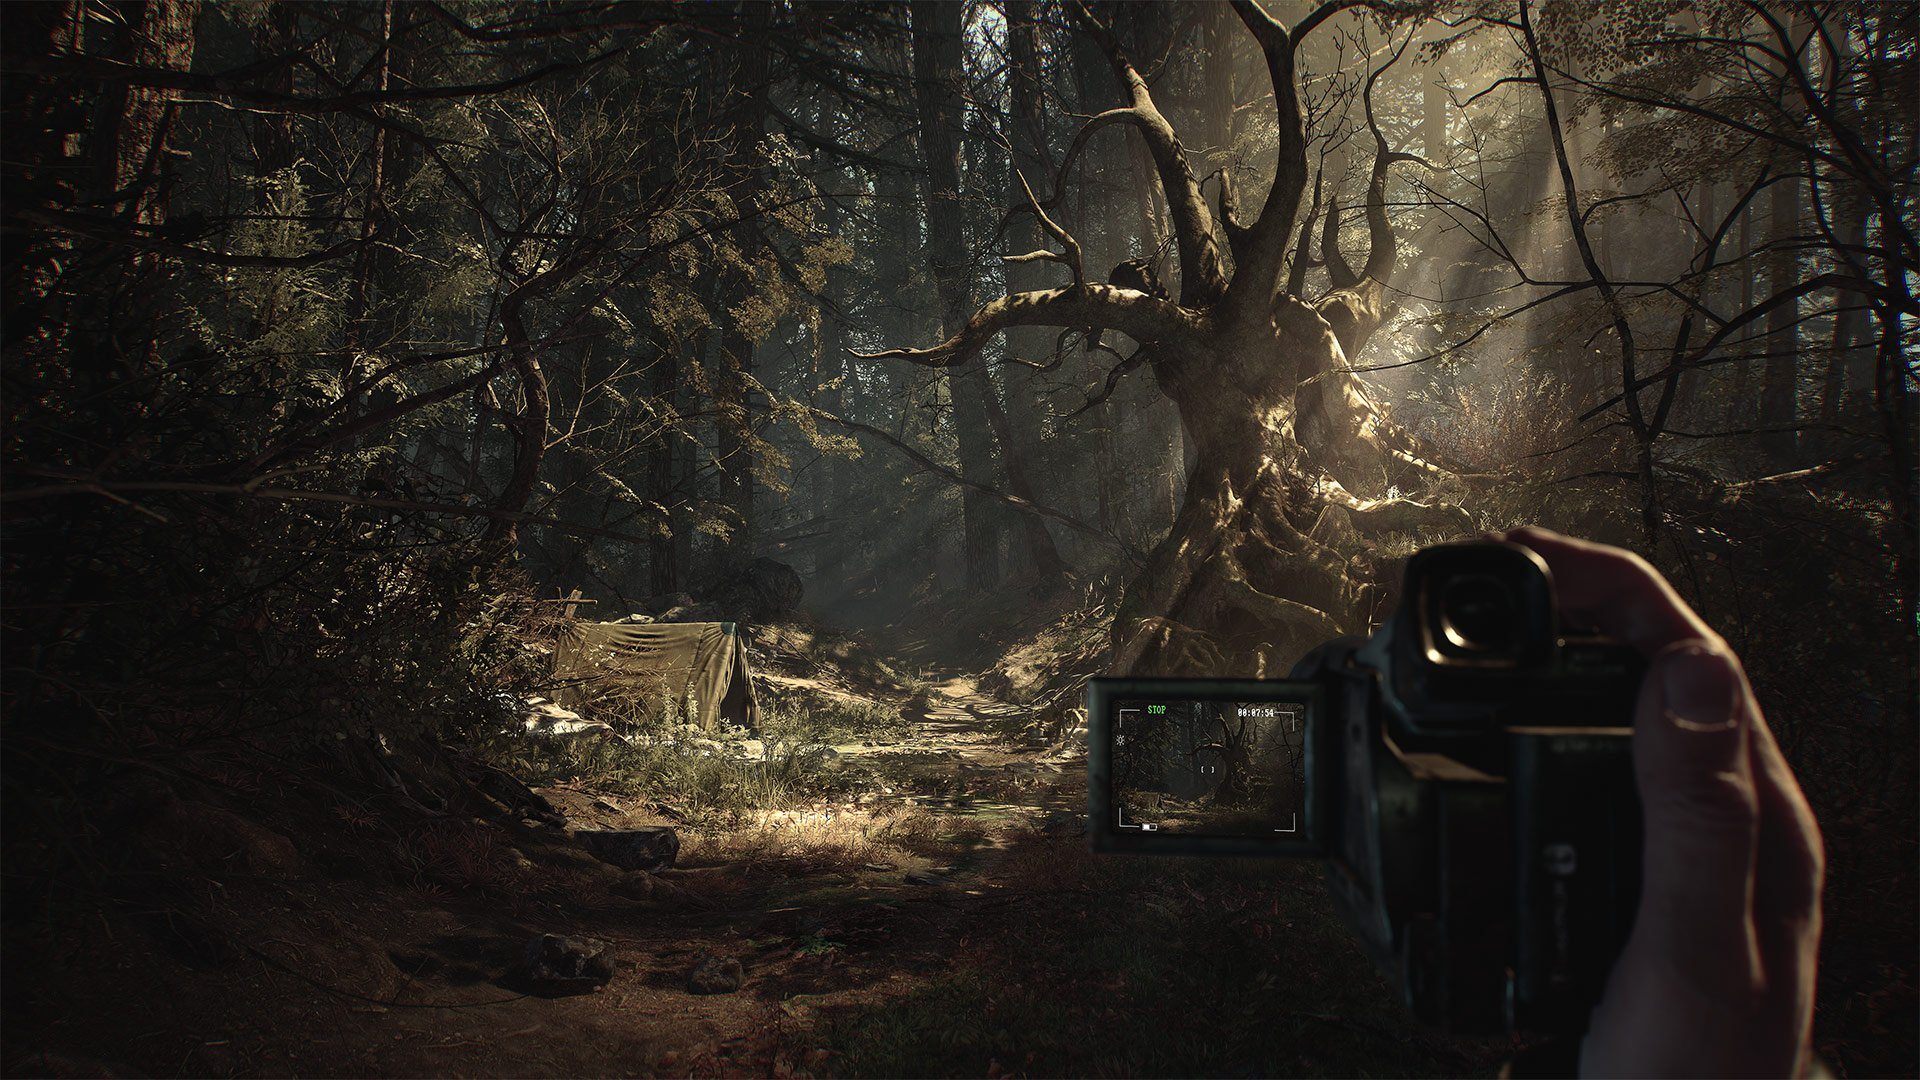 The Blair Witch game will feature a camcorder mechanic that will help you piece together puzzles related to the story.